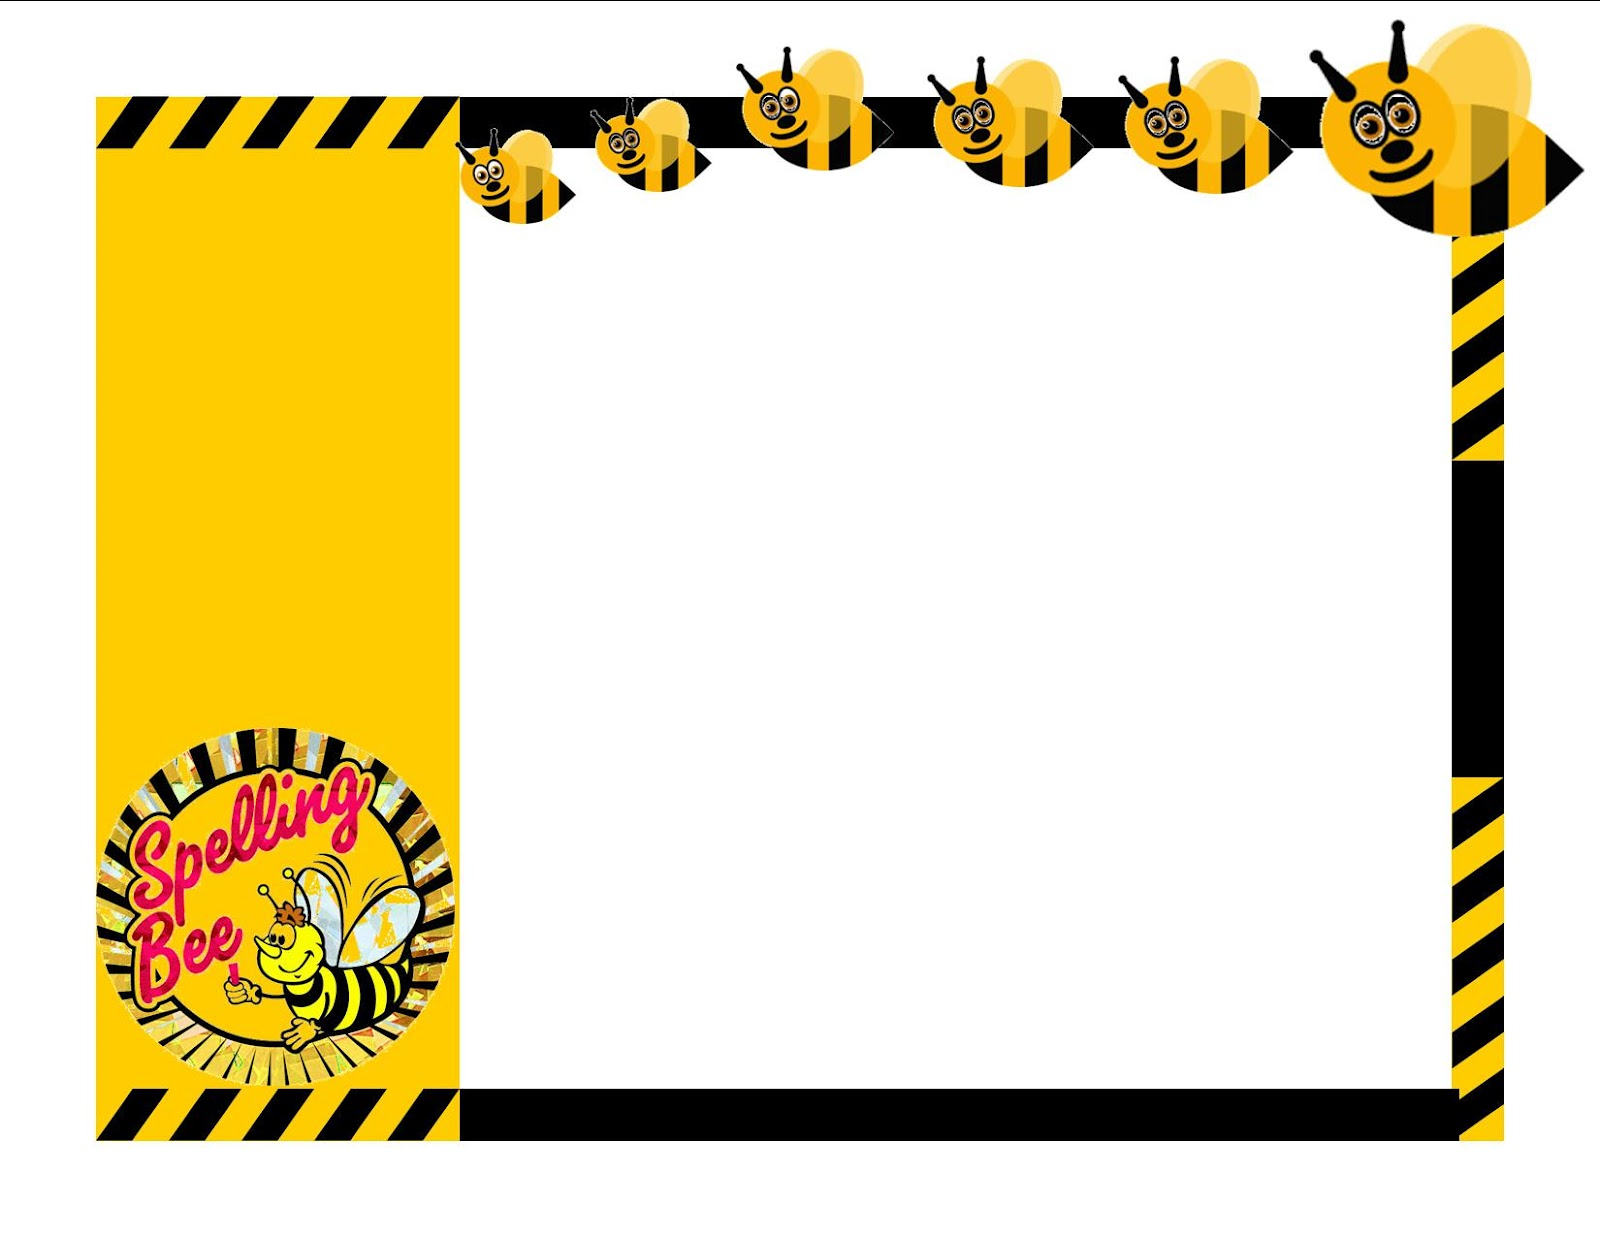 Spelling Bee Borders Clipart - Clipart Kid